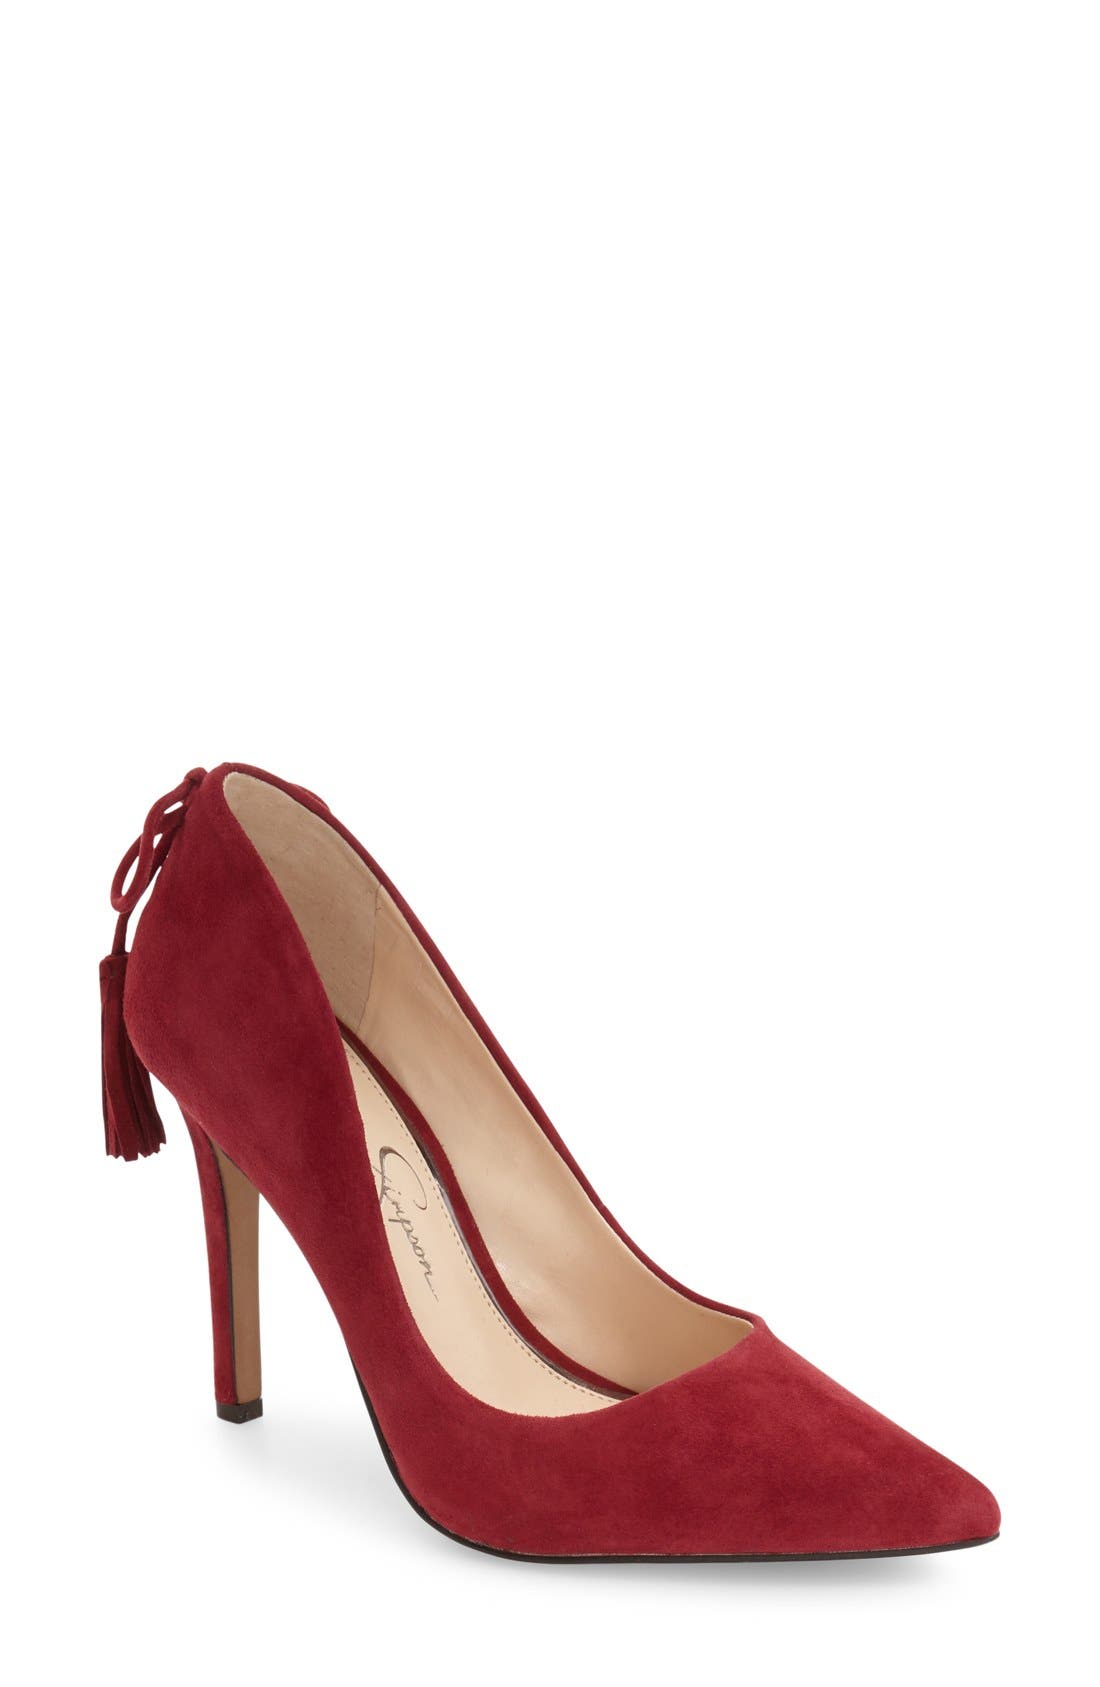 Main Image - Jessica Simpson Centella Pointy Toe Pump (Women)